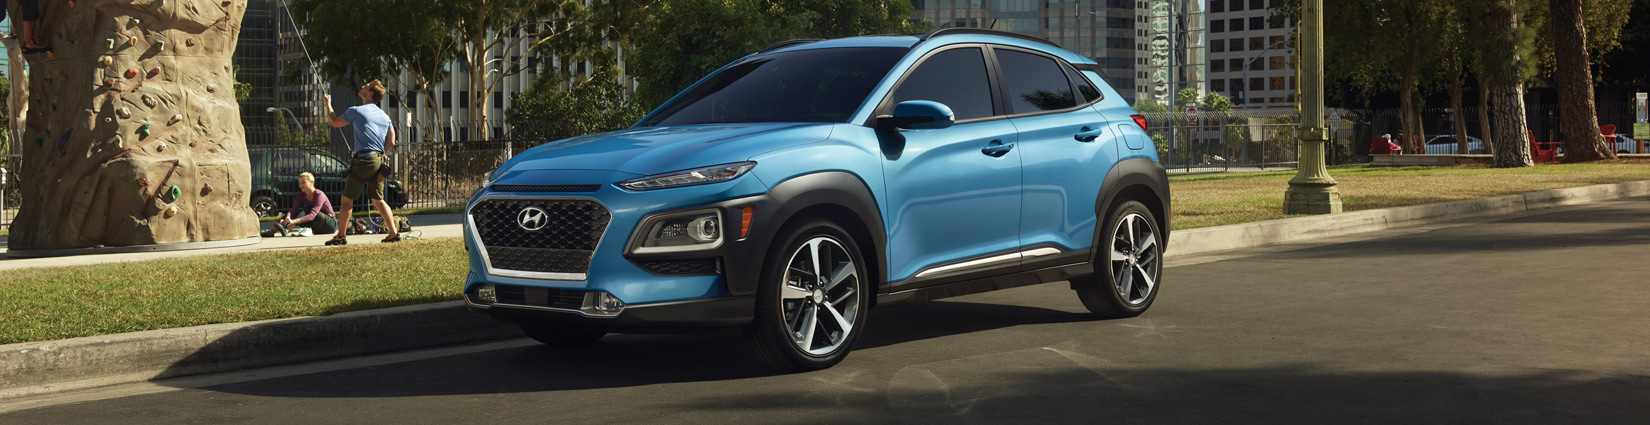 2018 Hyundai Kona model